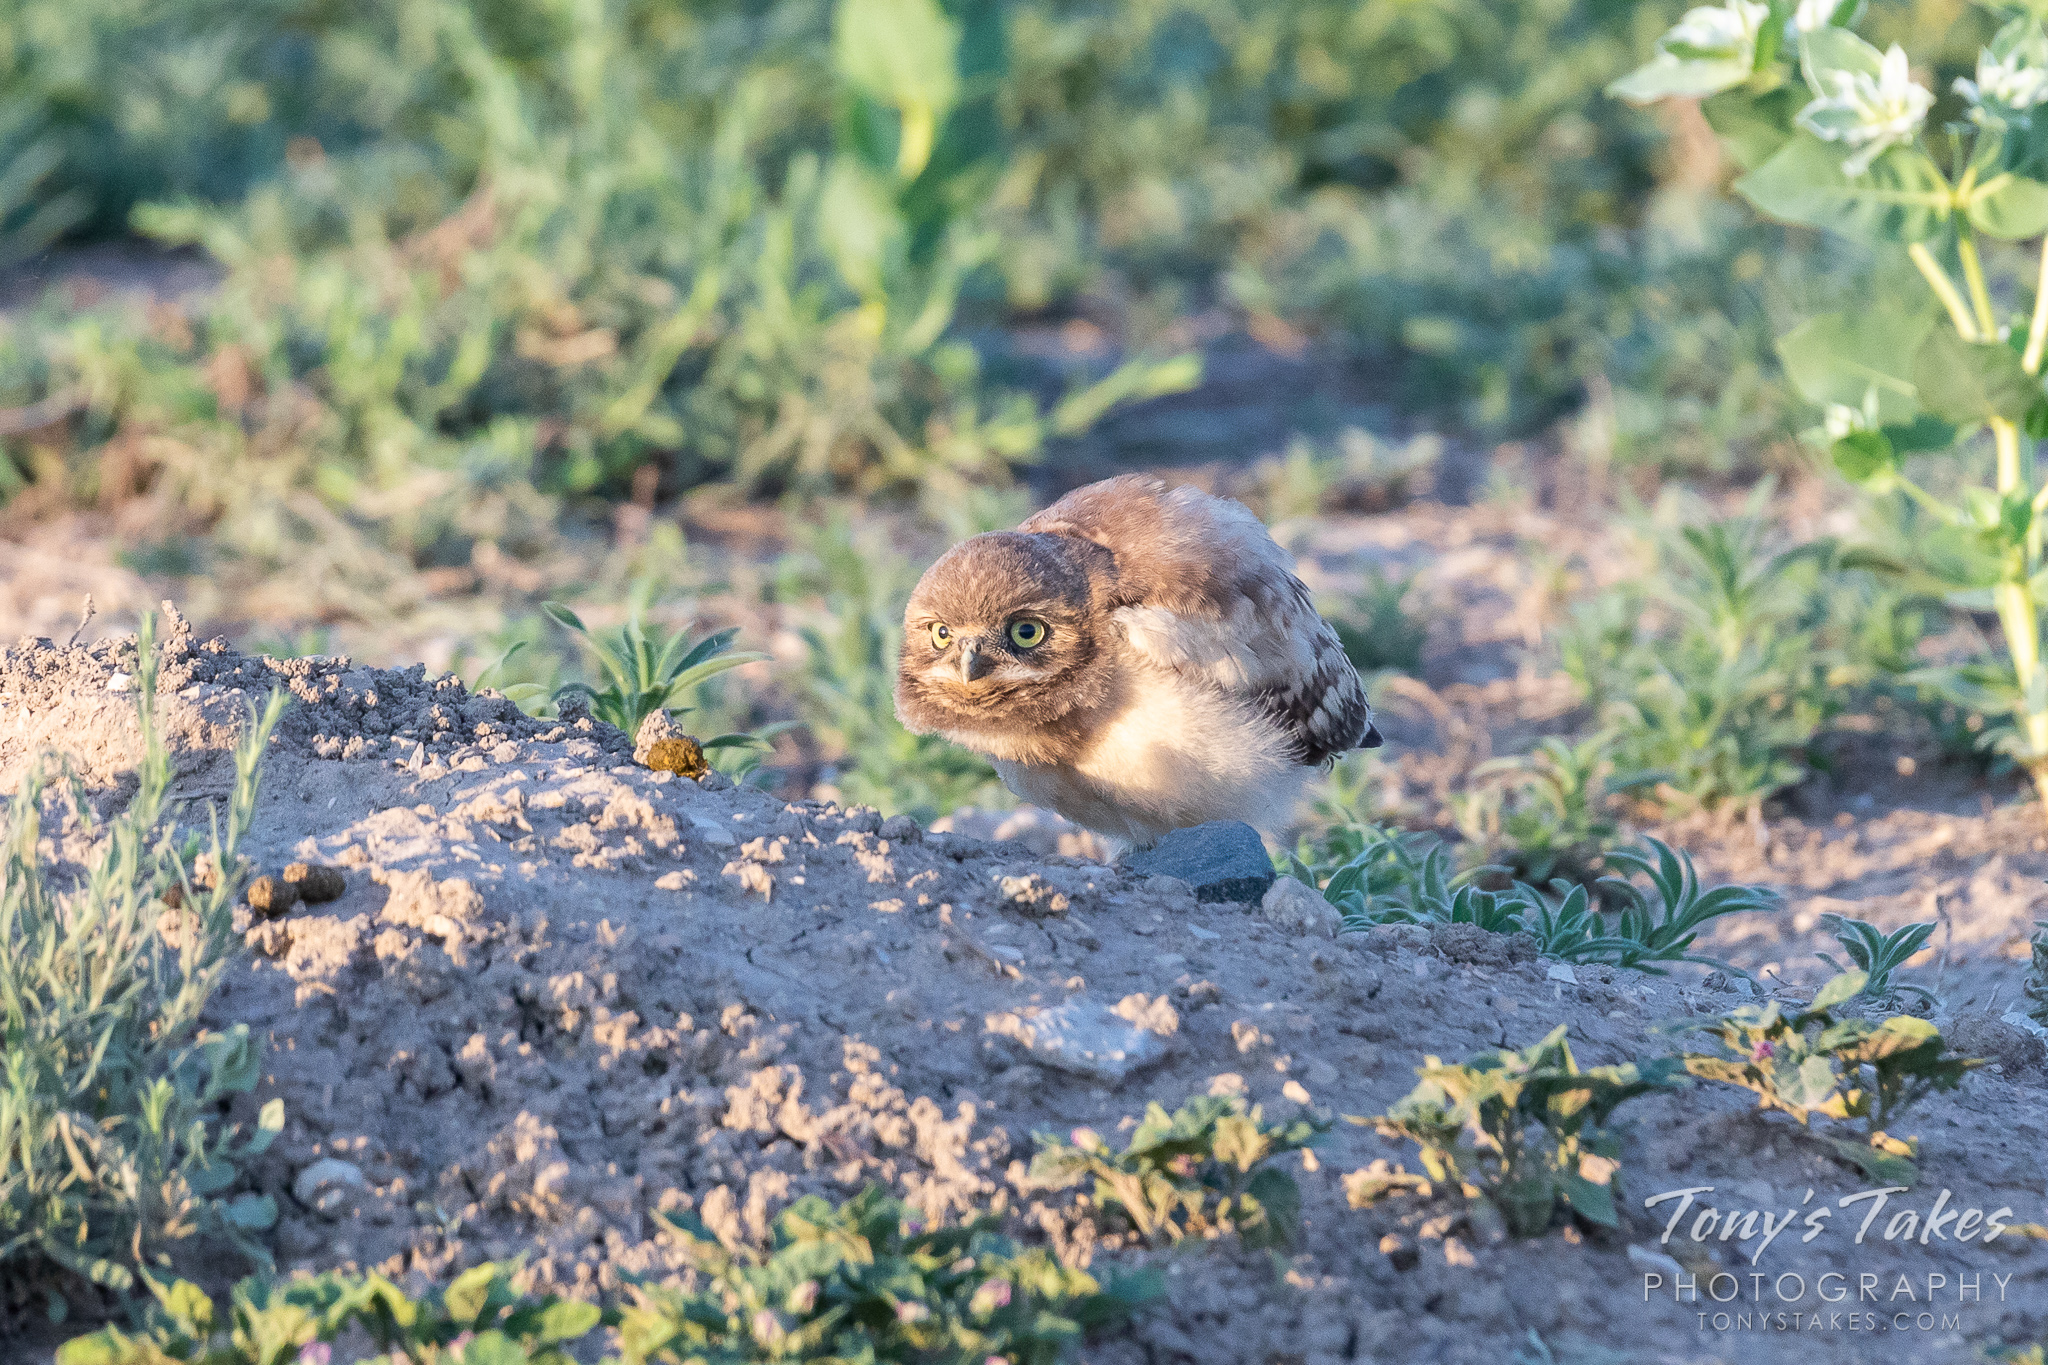 A burrowing owl owlet tries to keep low while it watches the gathered photographers. (© Tony's Takes)